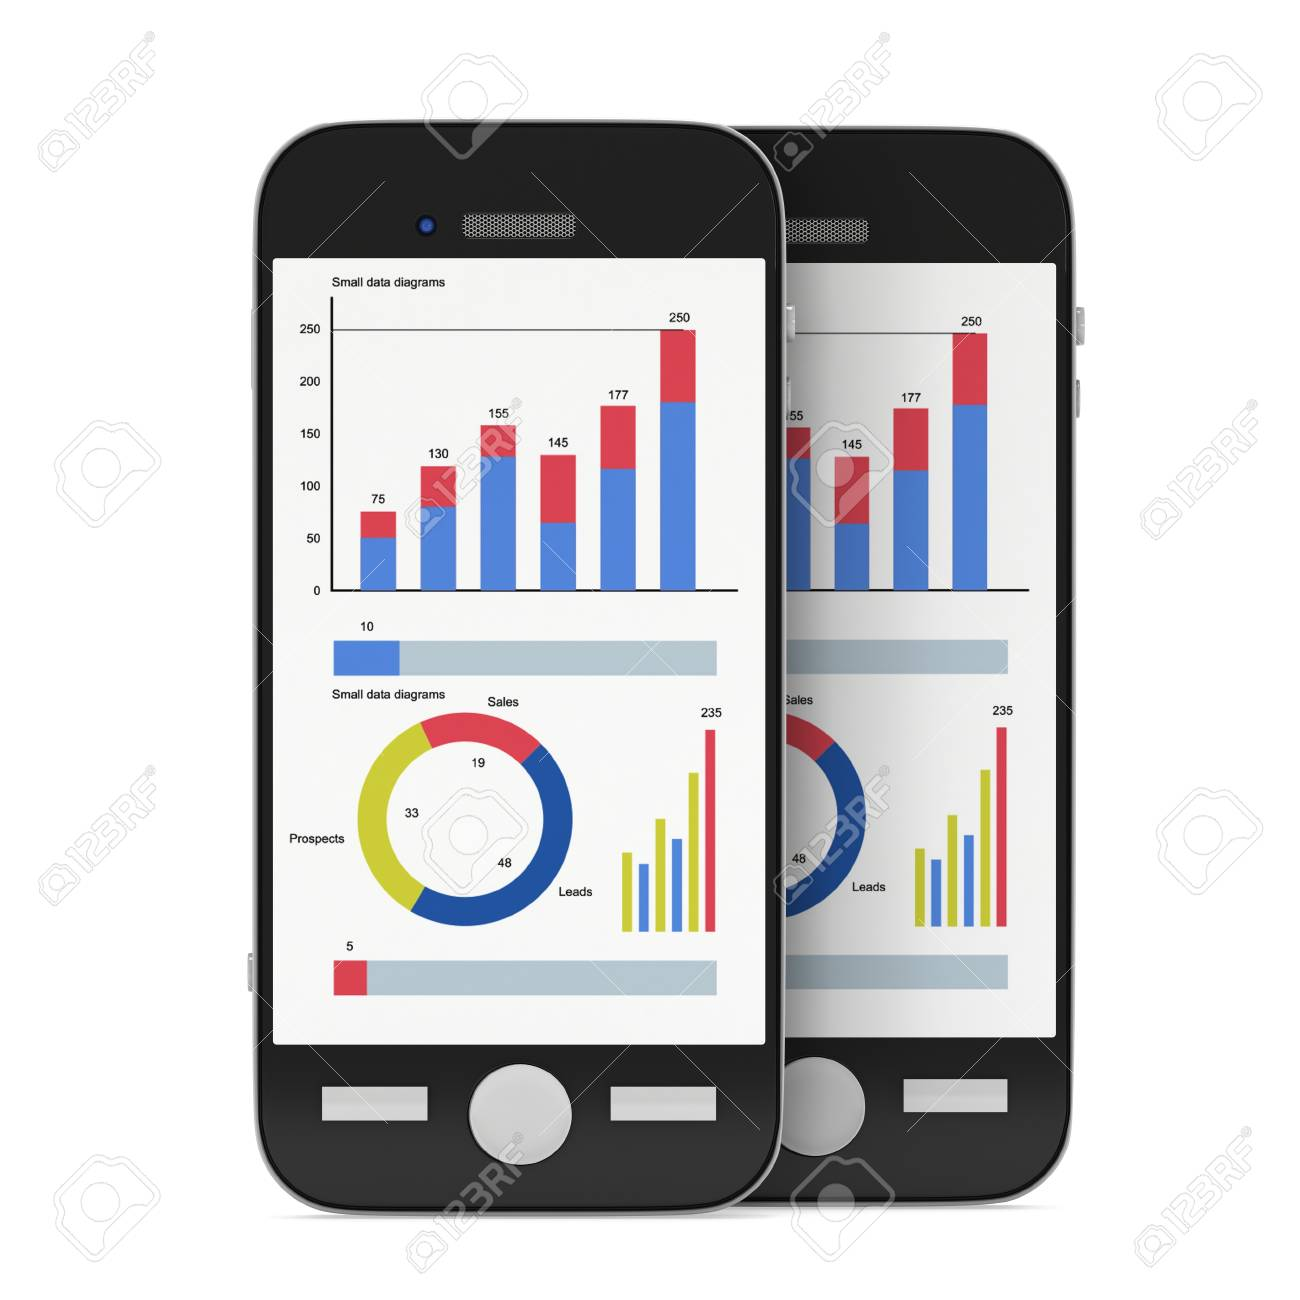 Small Data On Smartphone Phones With Bar Graph Charts And Pie